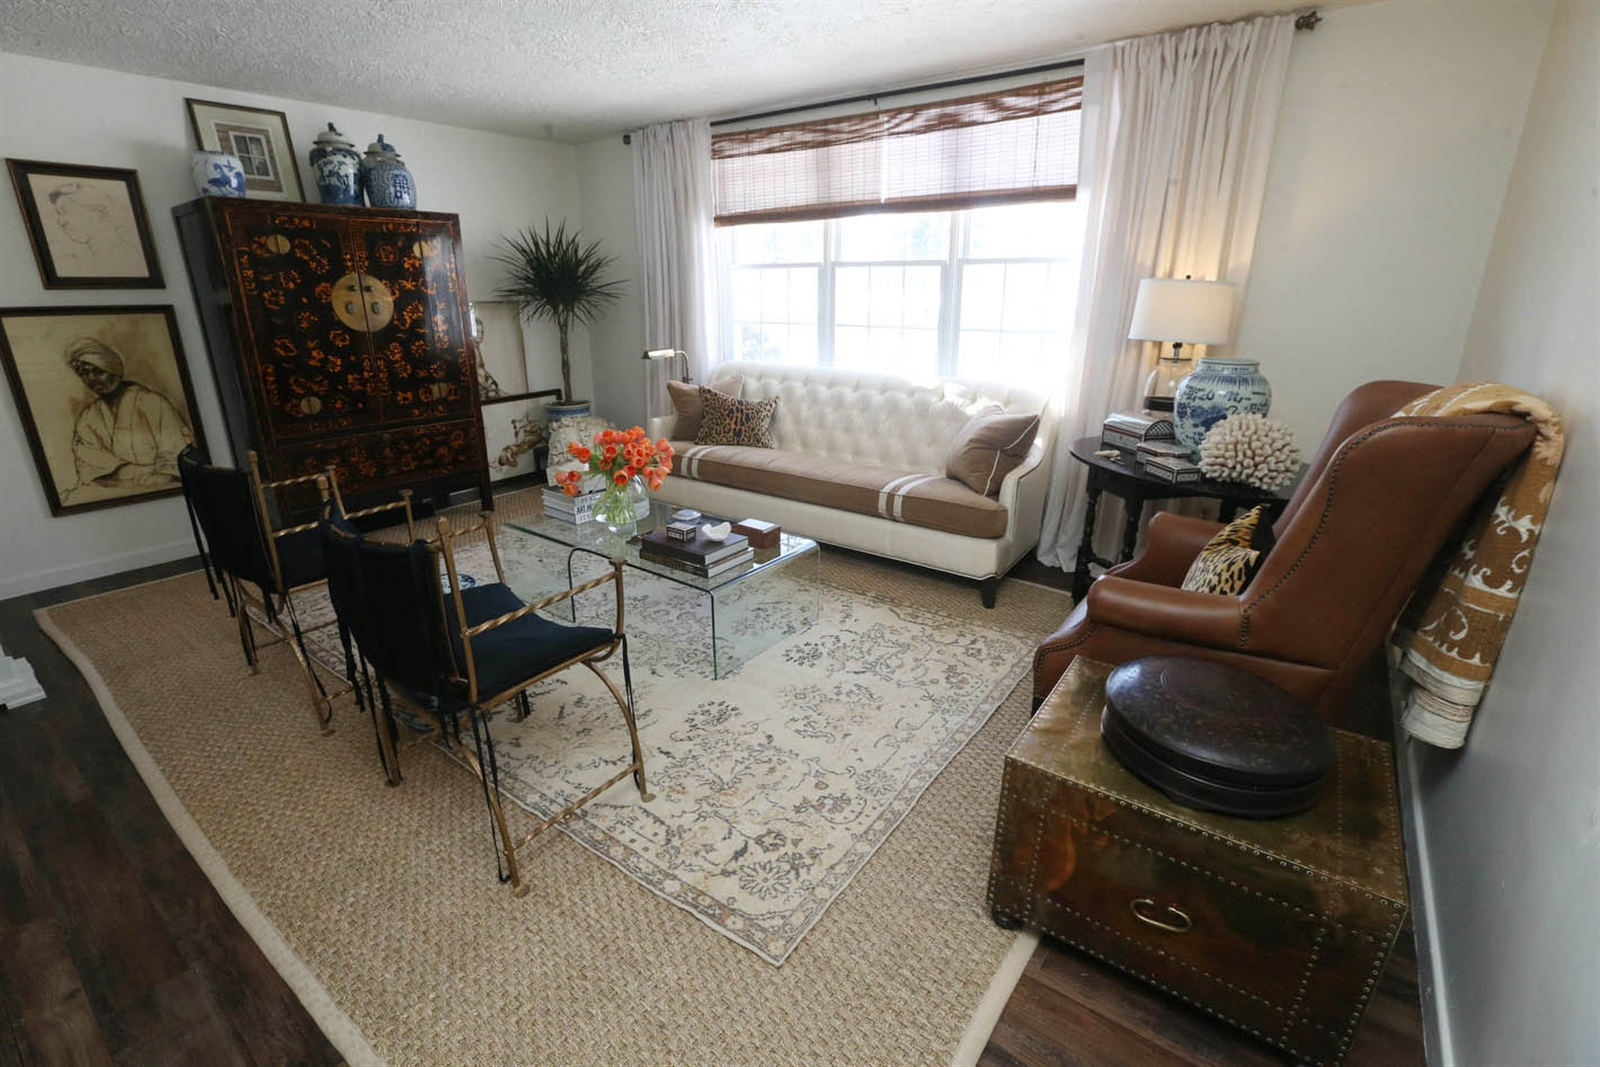 Renters are opting for higher-end apartments like this one. (Sharon Cantillon/Buffalo News file photo)